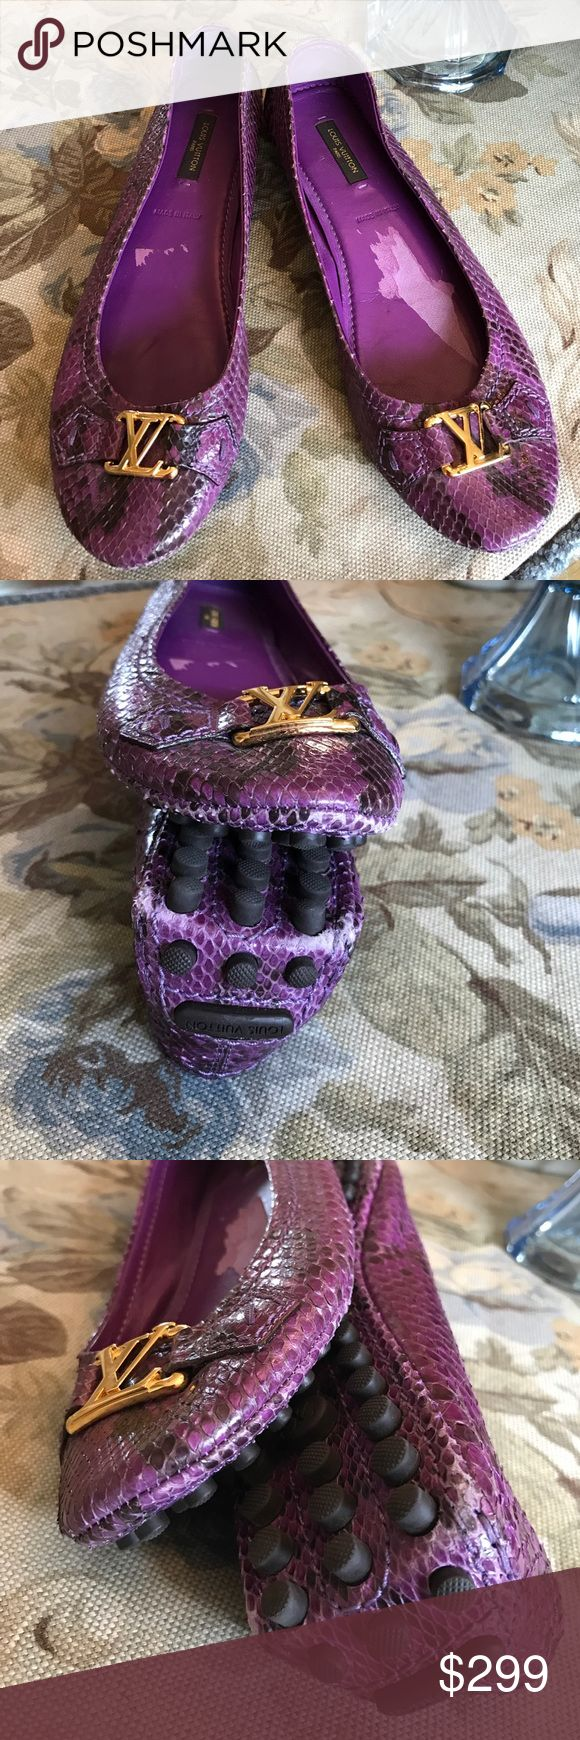 🆕 listing💜Louis Vuitton ballerina Oxford flats💜 💜 Beautiful purple Louis Vuitton flats made in Italy. Tag in sole of shoe was torn out and some unnoticeable wear on left heel more than right and front toe more than left. But still fantastic deal in this pair of shoes. You'll have hard time finding these. Lovely 💜 Louis Vuitton Shoes Flats & Loafers